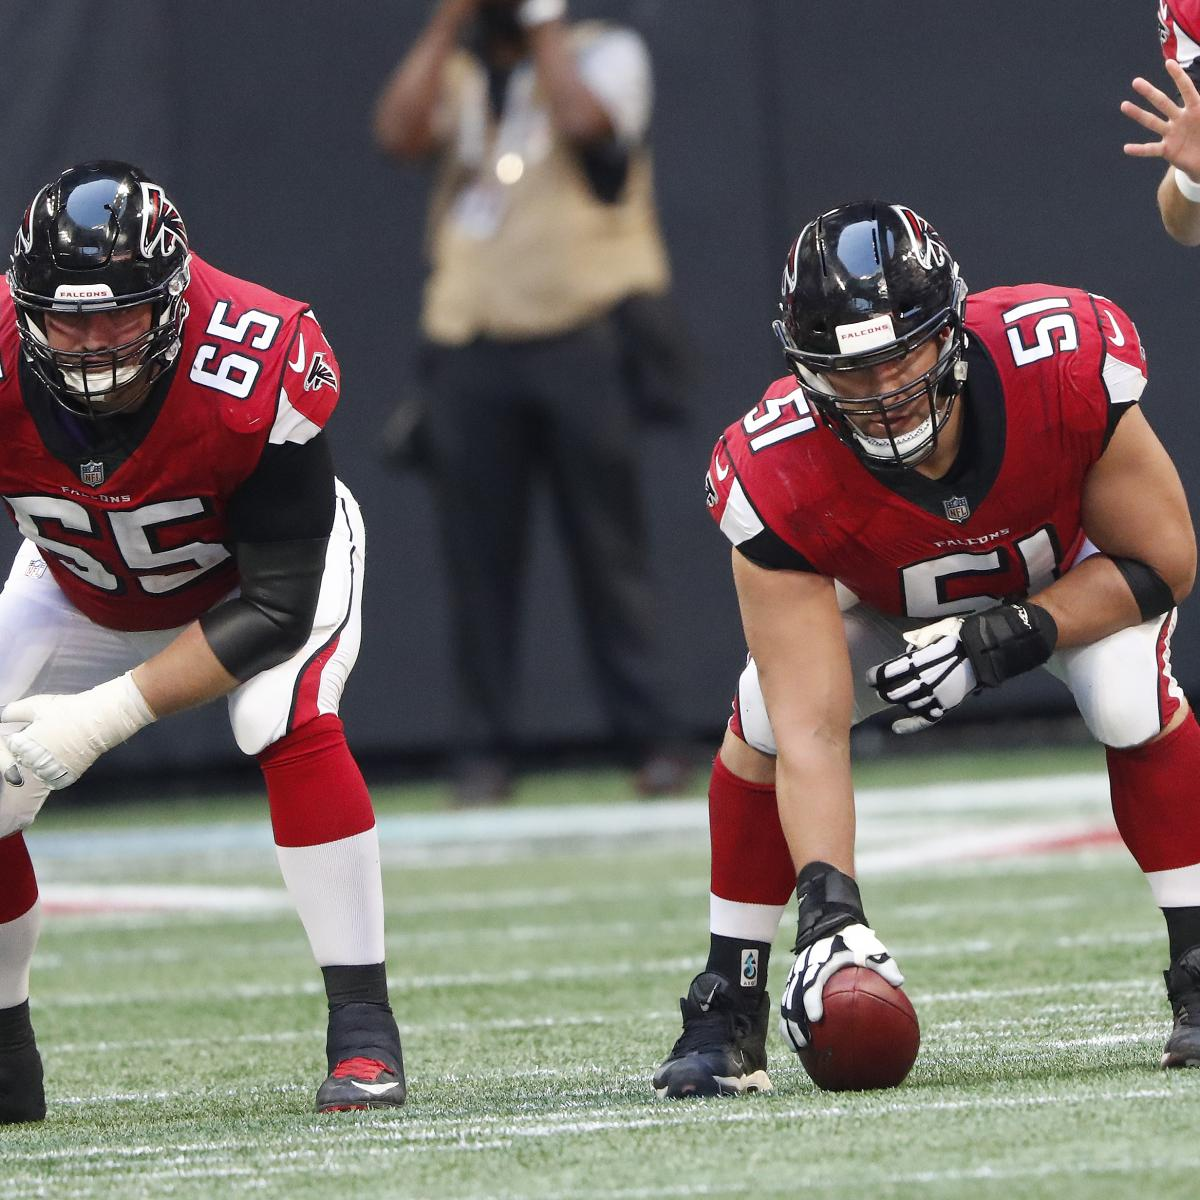 Ford Offensive Line of the Week: Interview with Falcons OL Alex Mack